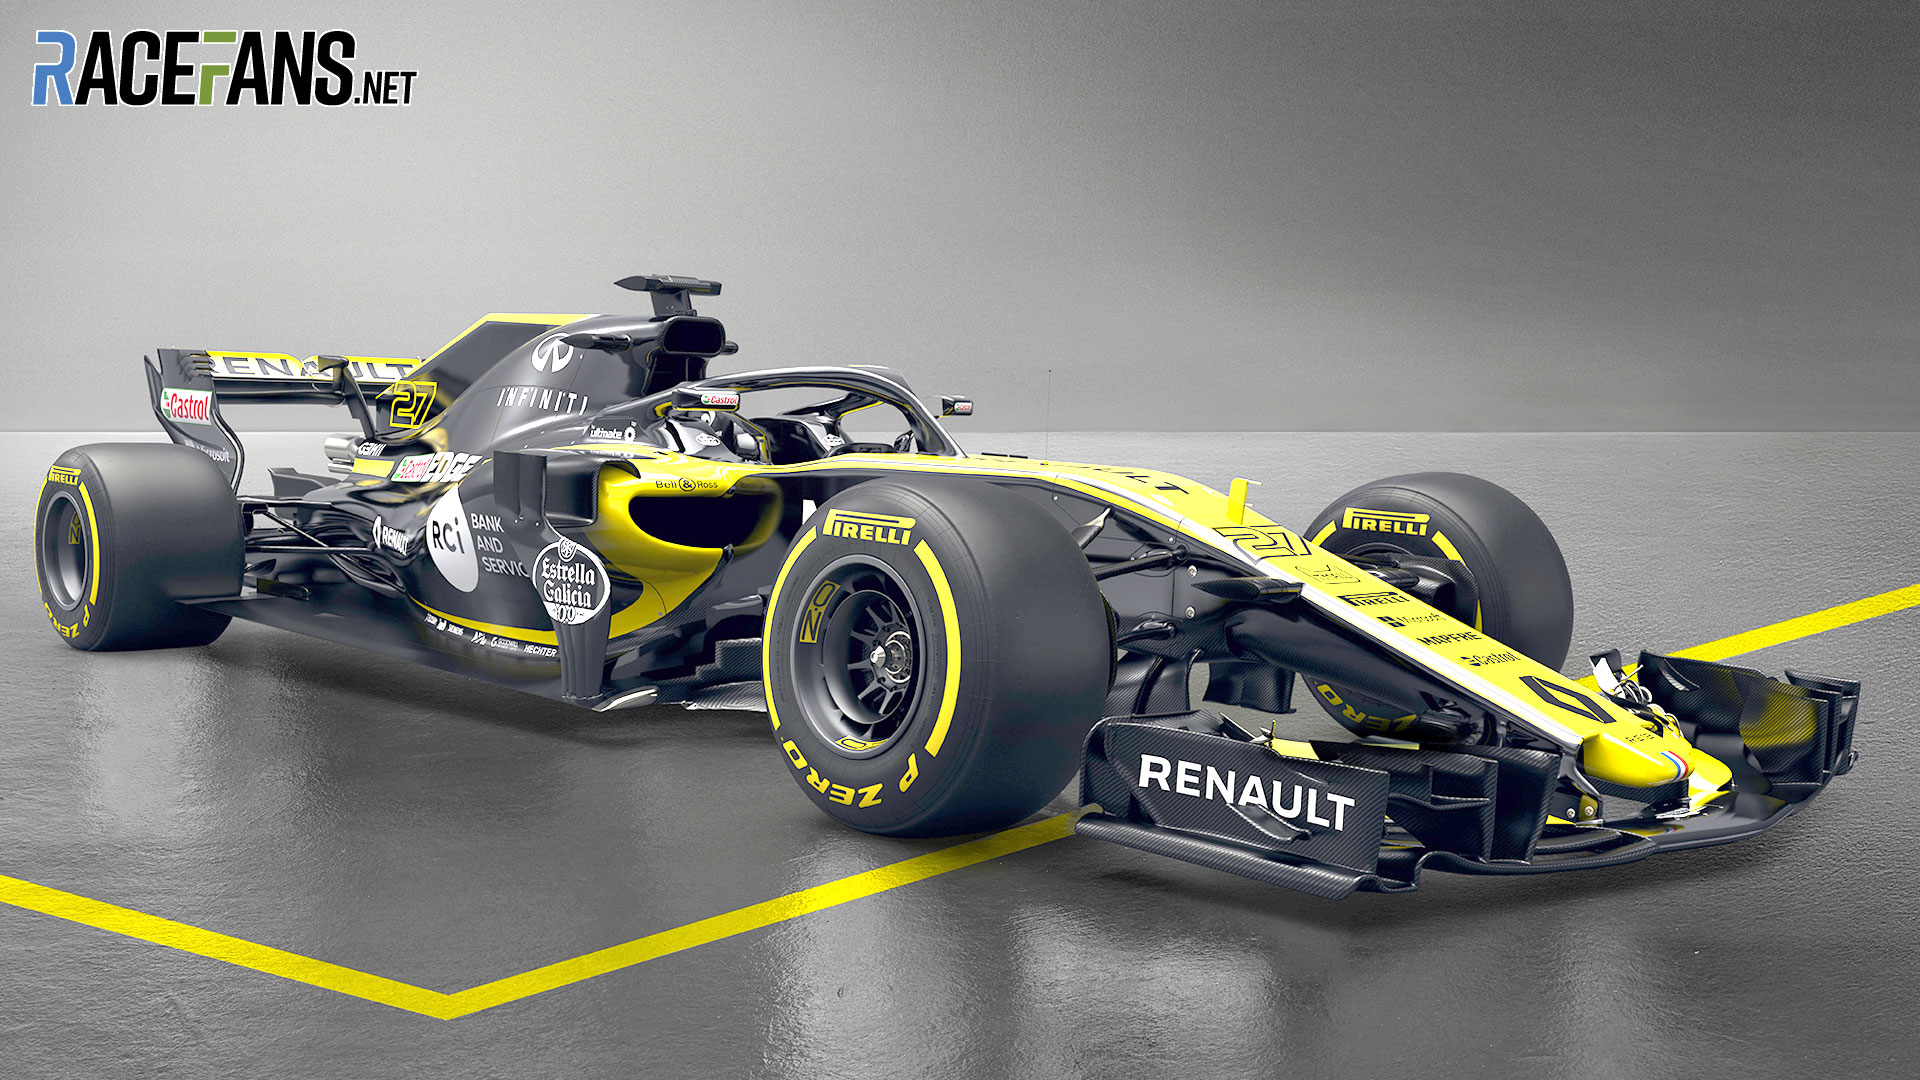 Renault's new F1 car for 2018 revealed · RaceFans